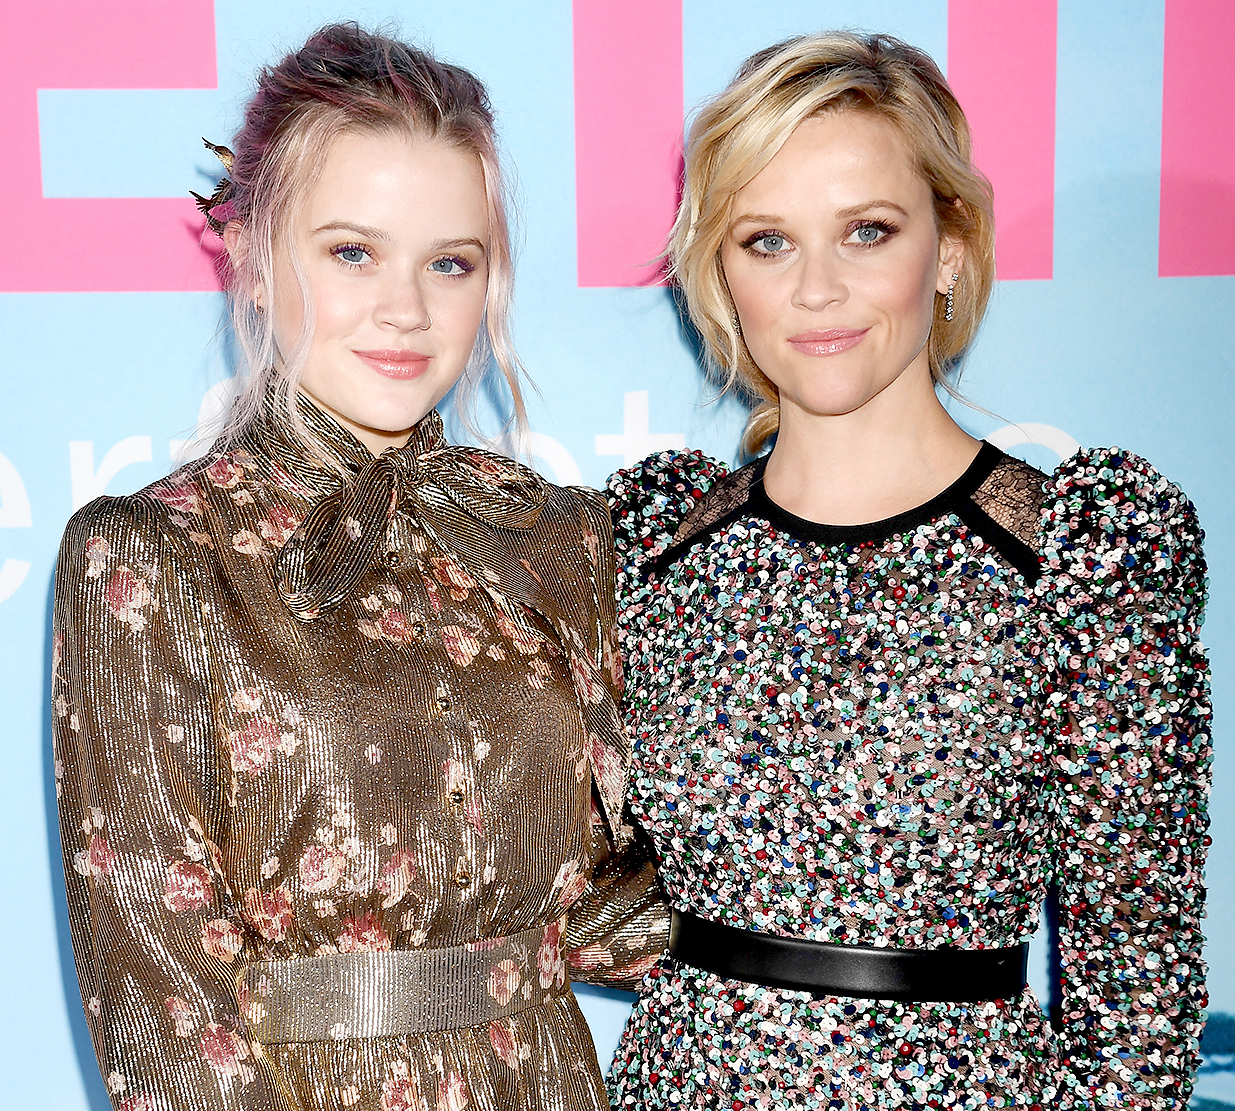 Ava Elizabeth Phillippe (L) and Reese Witherspoon attend the premiere of HBO's 'Big Little Lies' at the TCL Chinese Theater on February 7, 2017 in Hollywood, California.